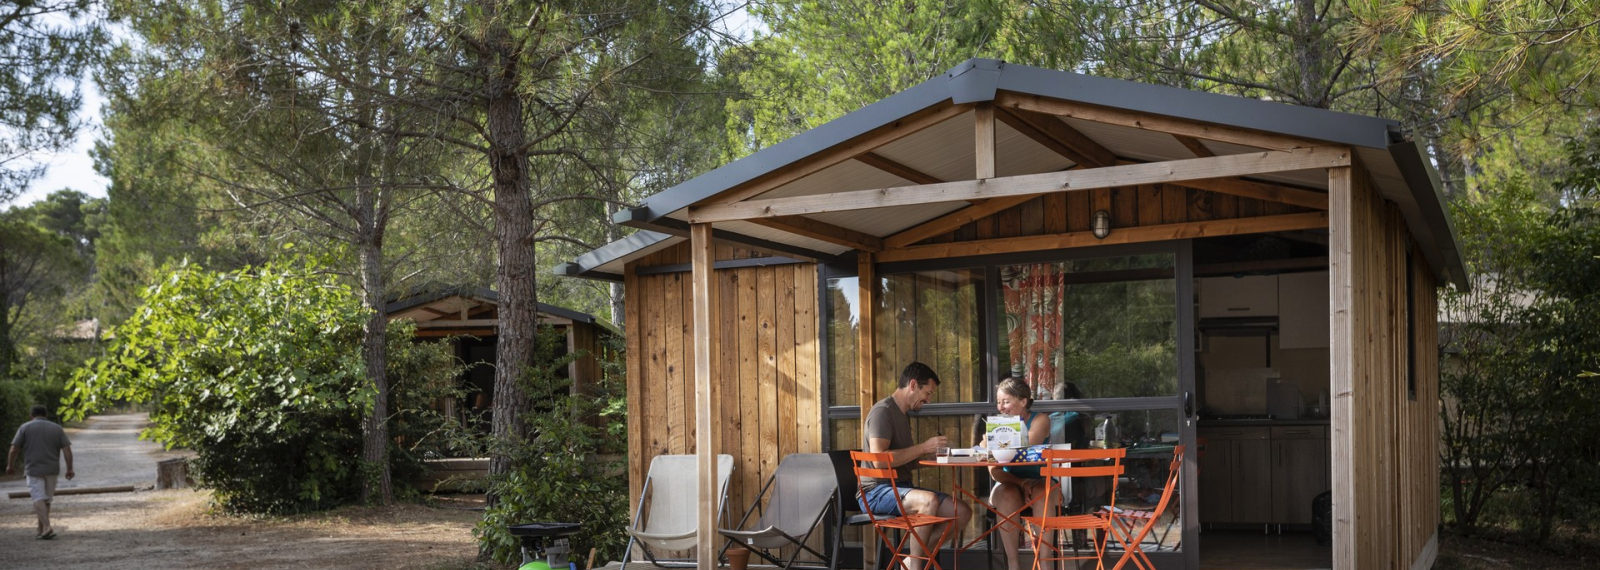 Camping Huttopia Fontvieille